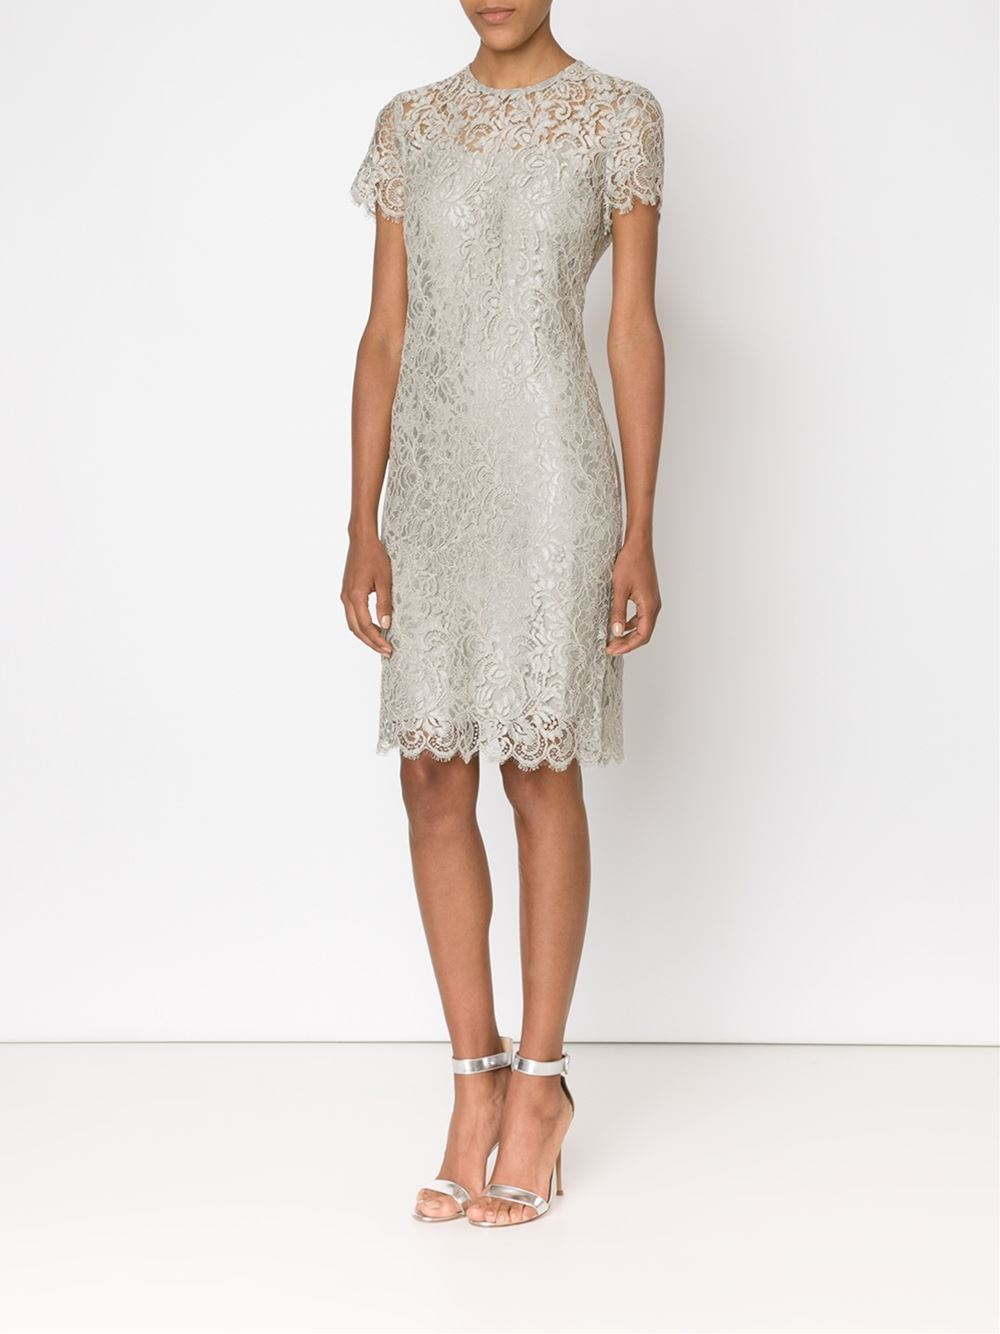 Ralph Lauren Black Label Floral Lace Fitted Dress In Gray